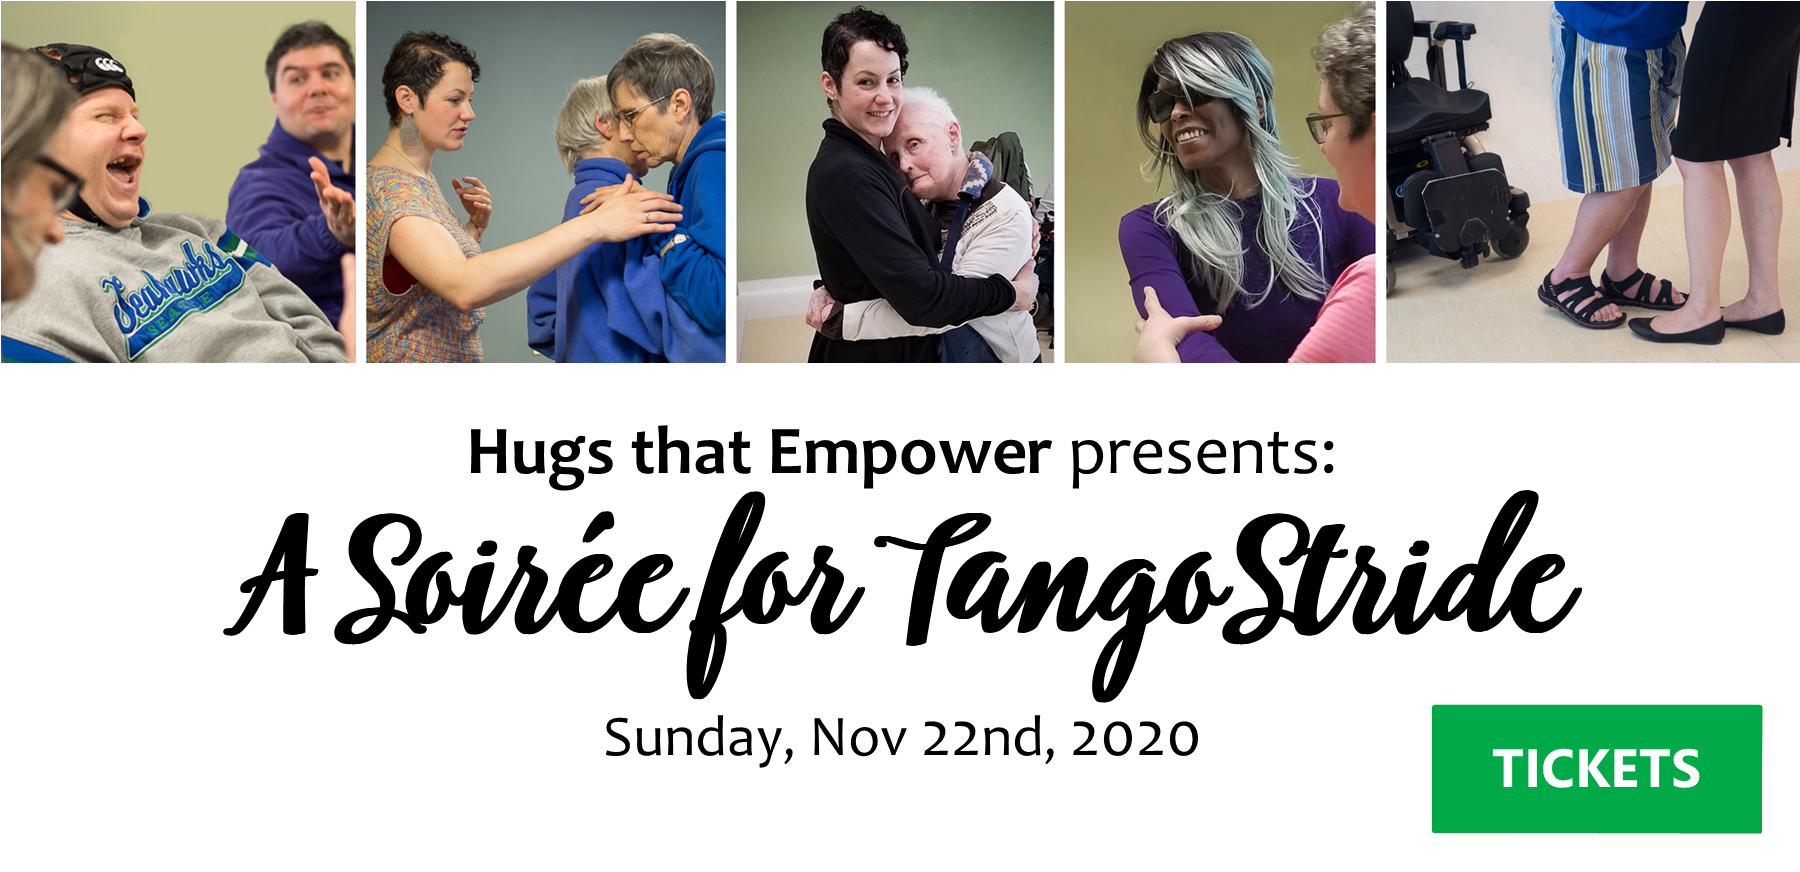 Hugs that Empower powers the TangoStride Program